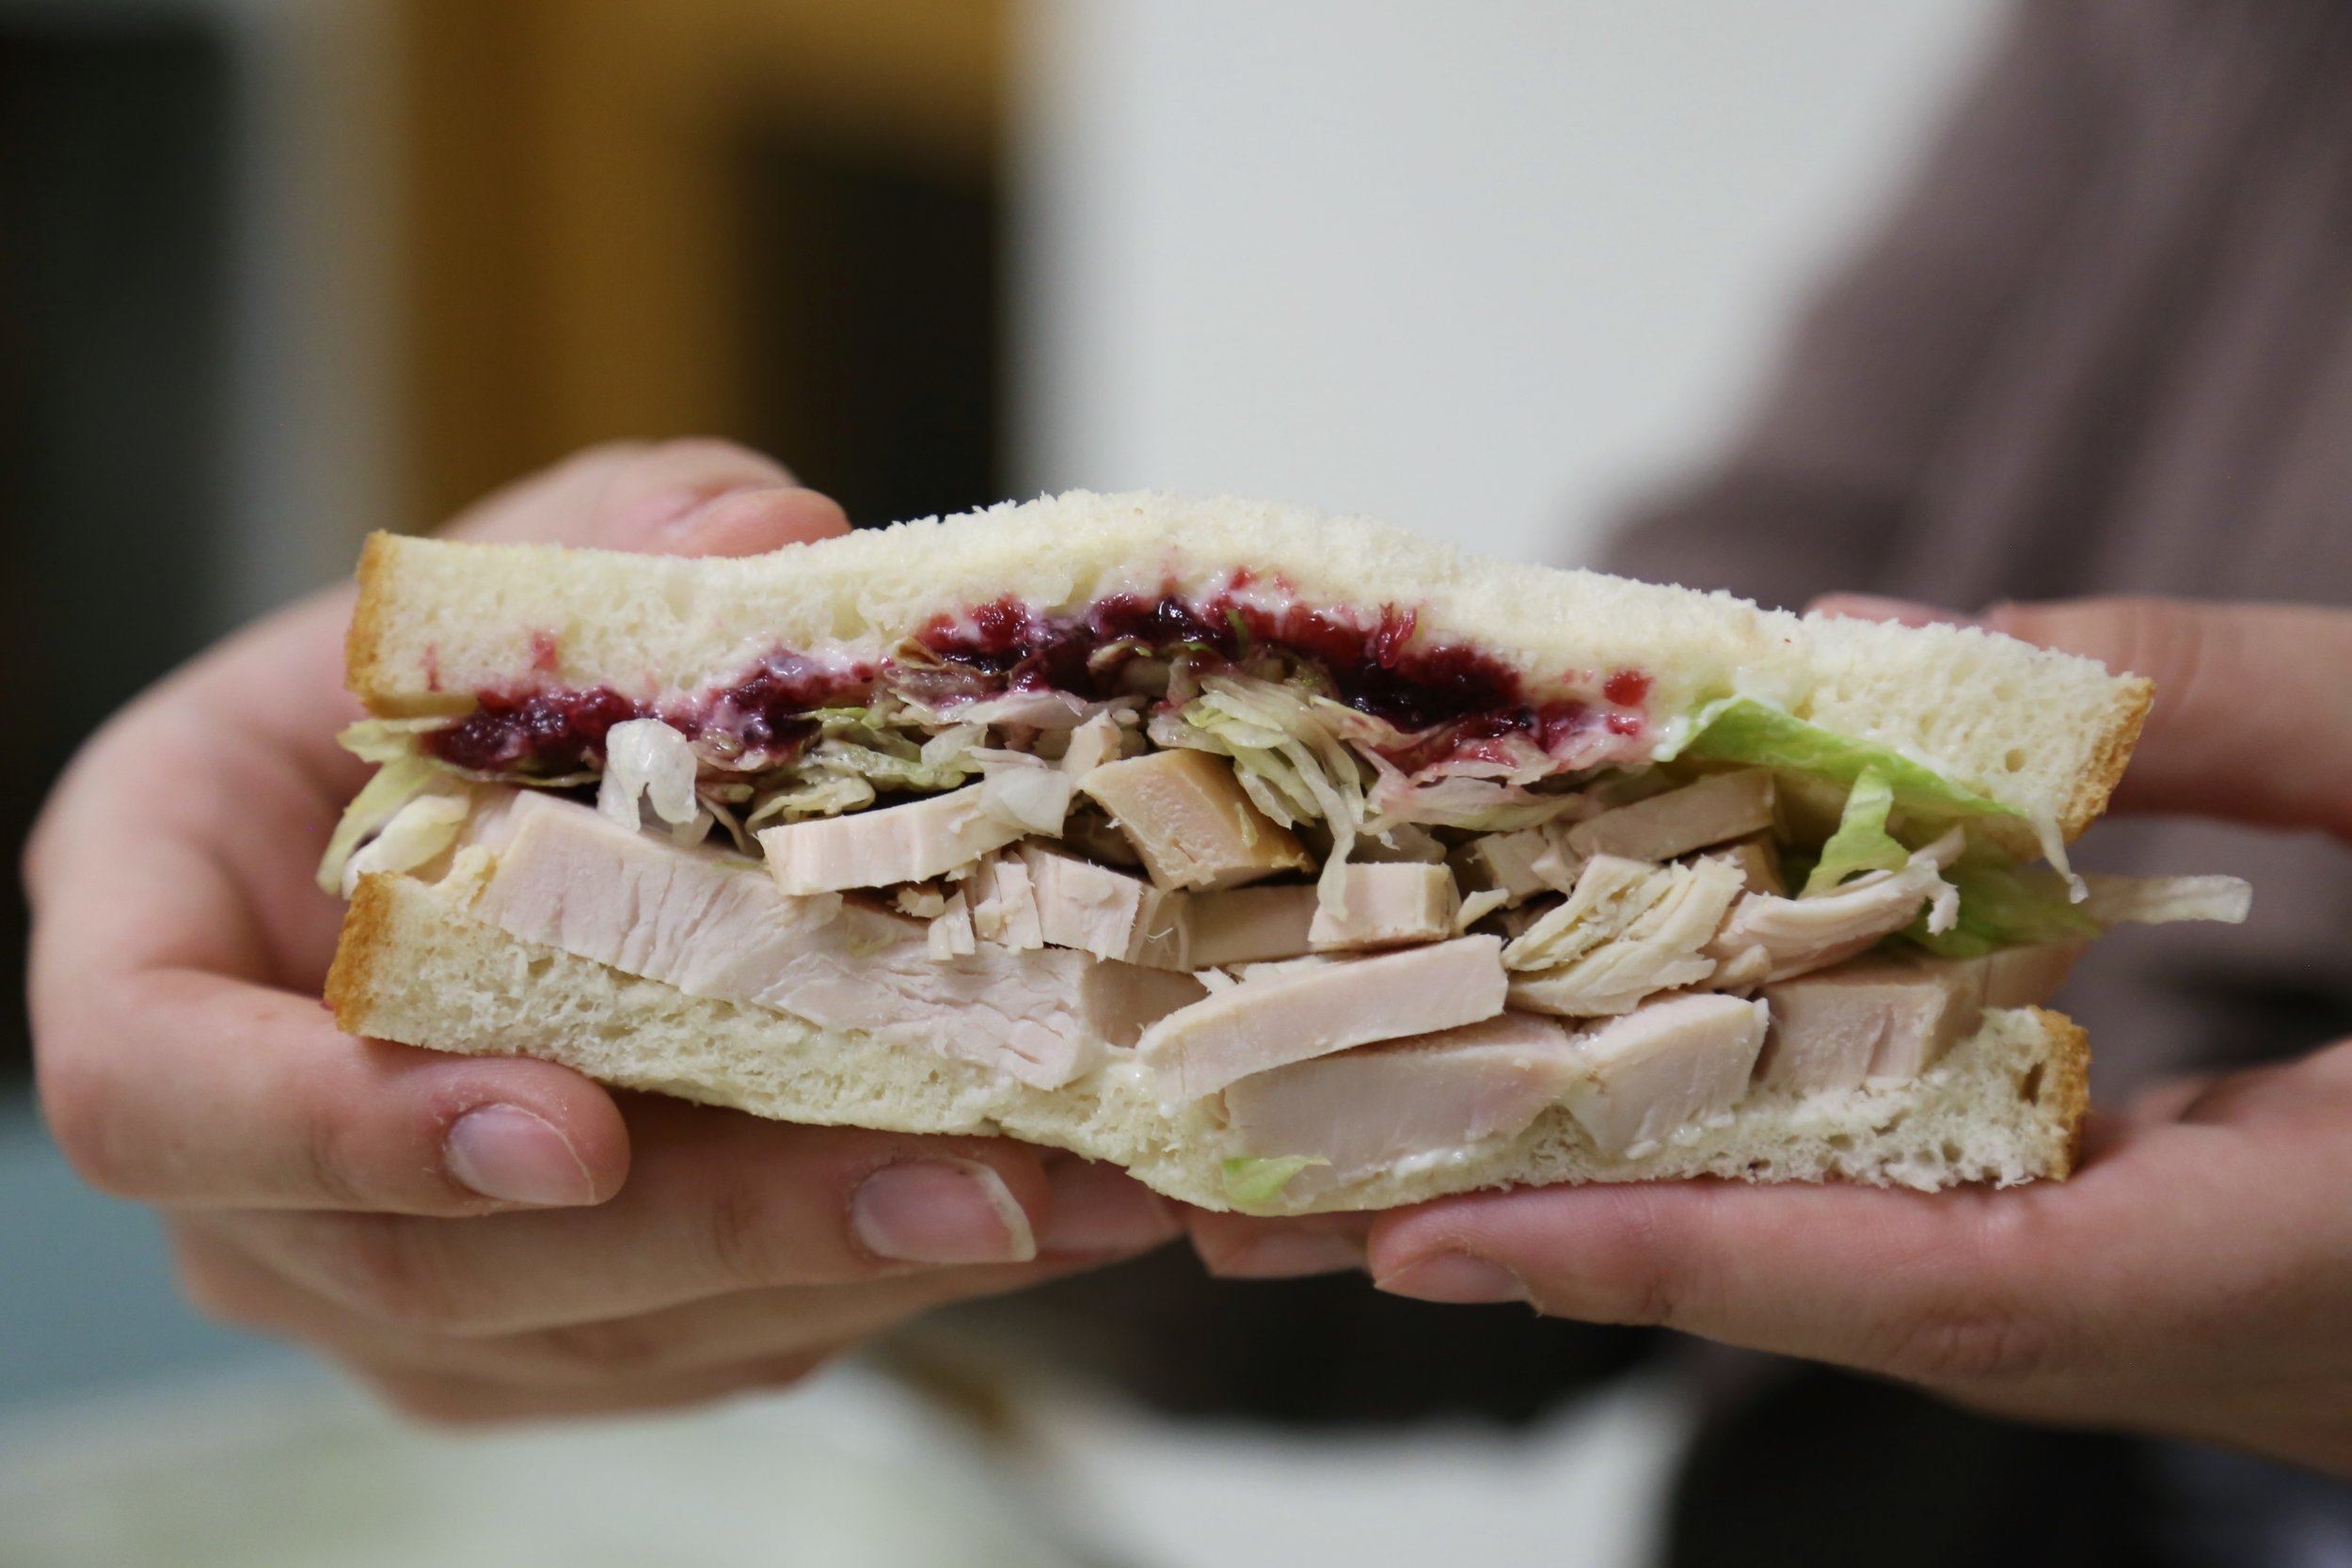 The incredible turkey sandwich with cranberry